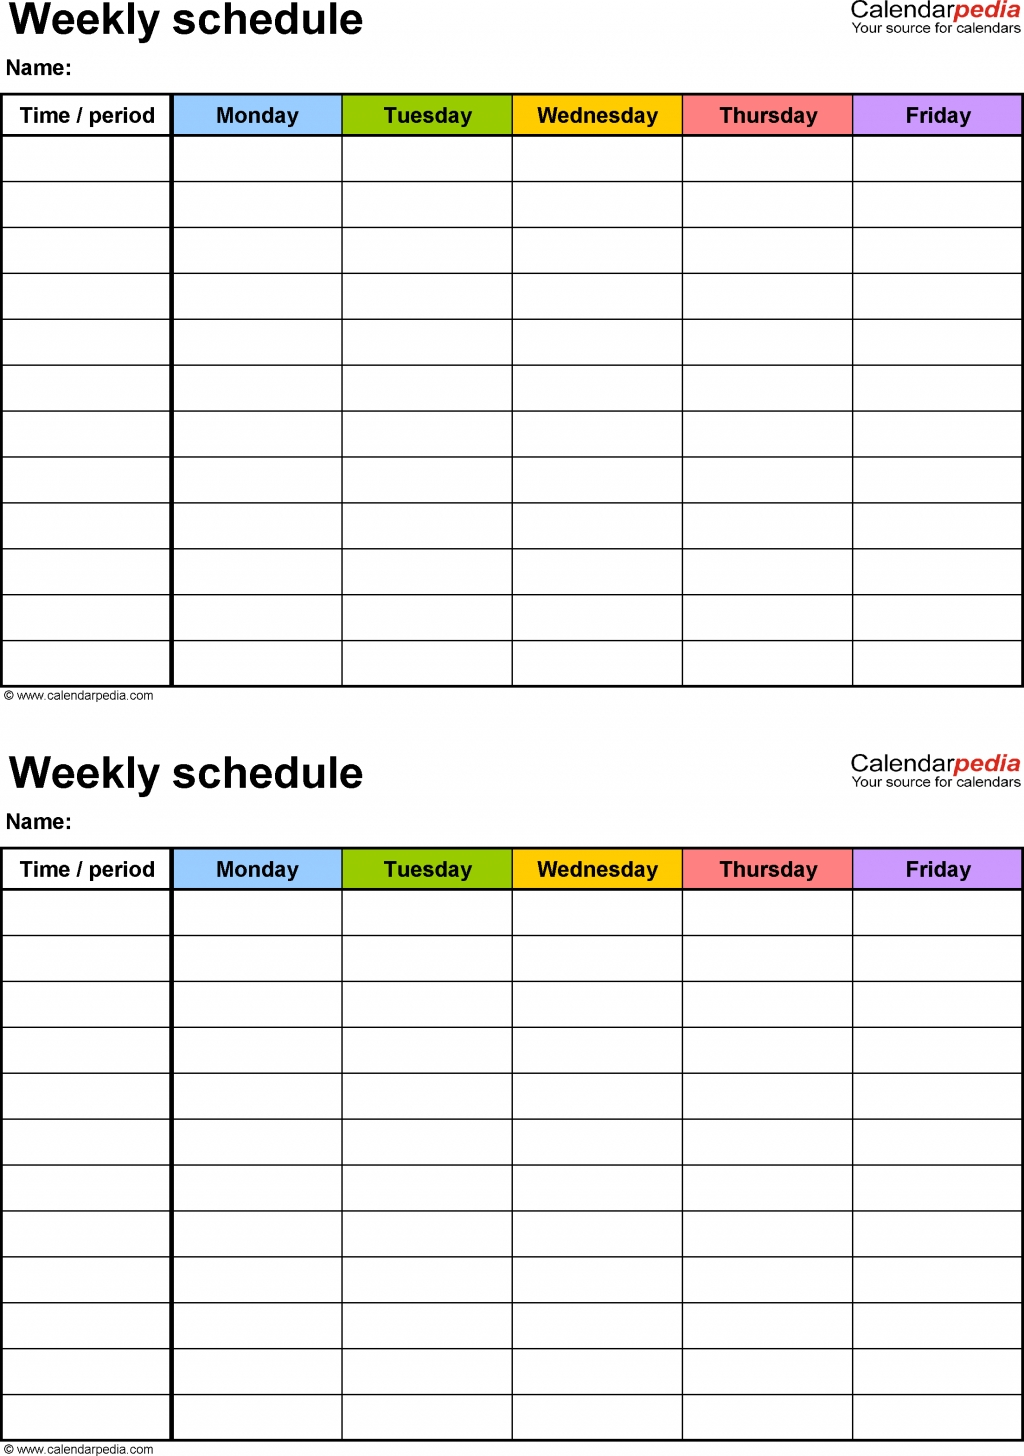 Monthly Plan Excel Template Sign Up Sheet Pdf Schedule-Monthly Calendar Sign Up Sheet